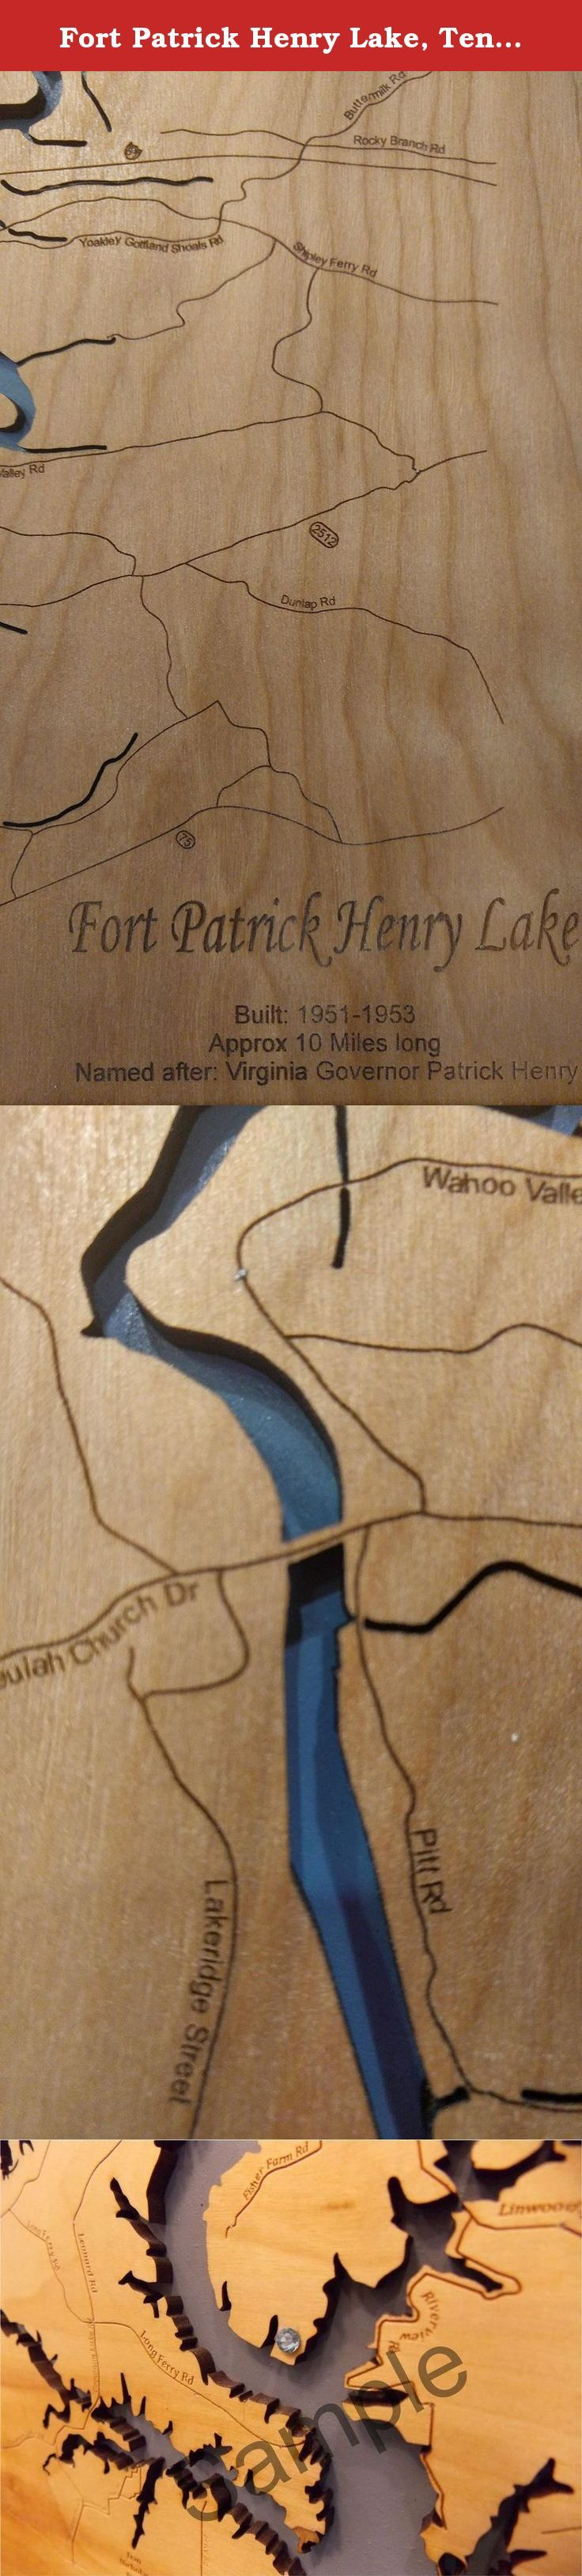 Fort Patrick Henry Lake, Tennessee: Framed Wood Map Wall Hanging. This is a beautifully detailed, laser engraved and precision cut topographical Map of Fort Patrick Henry Lake in Kingsport, Tennessee with the following interesting stats carved into it: Built: 1951 - 1953, Approx 10 Miles Long, Named after Virginia Governor Patrick Henry. Our handmade, solid wood, English chestnut stained frame gives it the classic look and is available in three sizes. Interesting factoid: The construction…